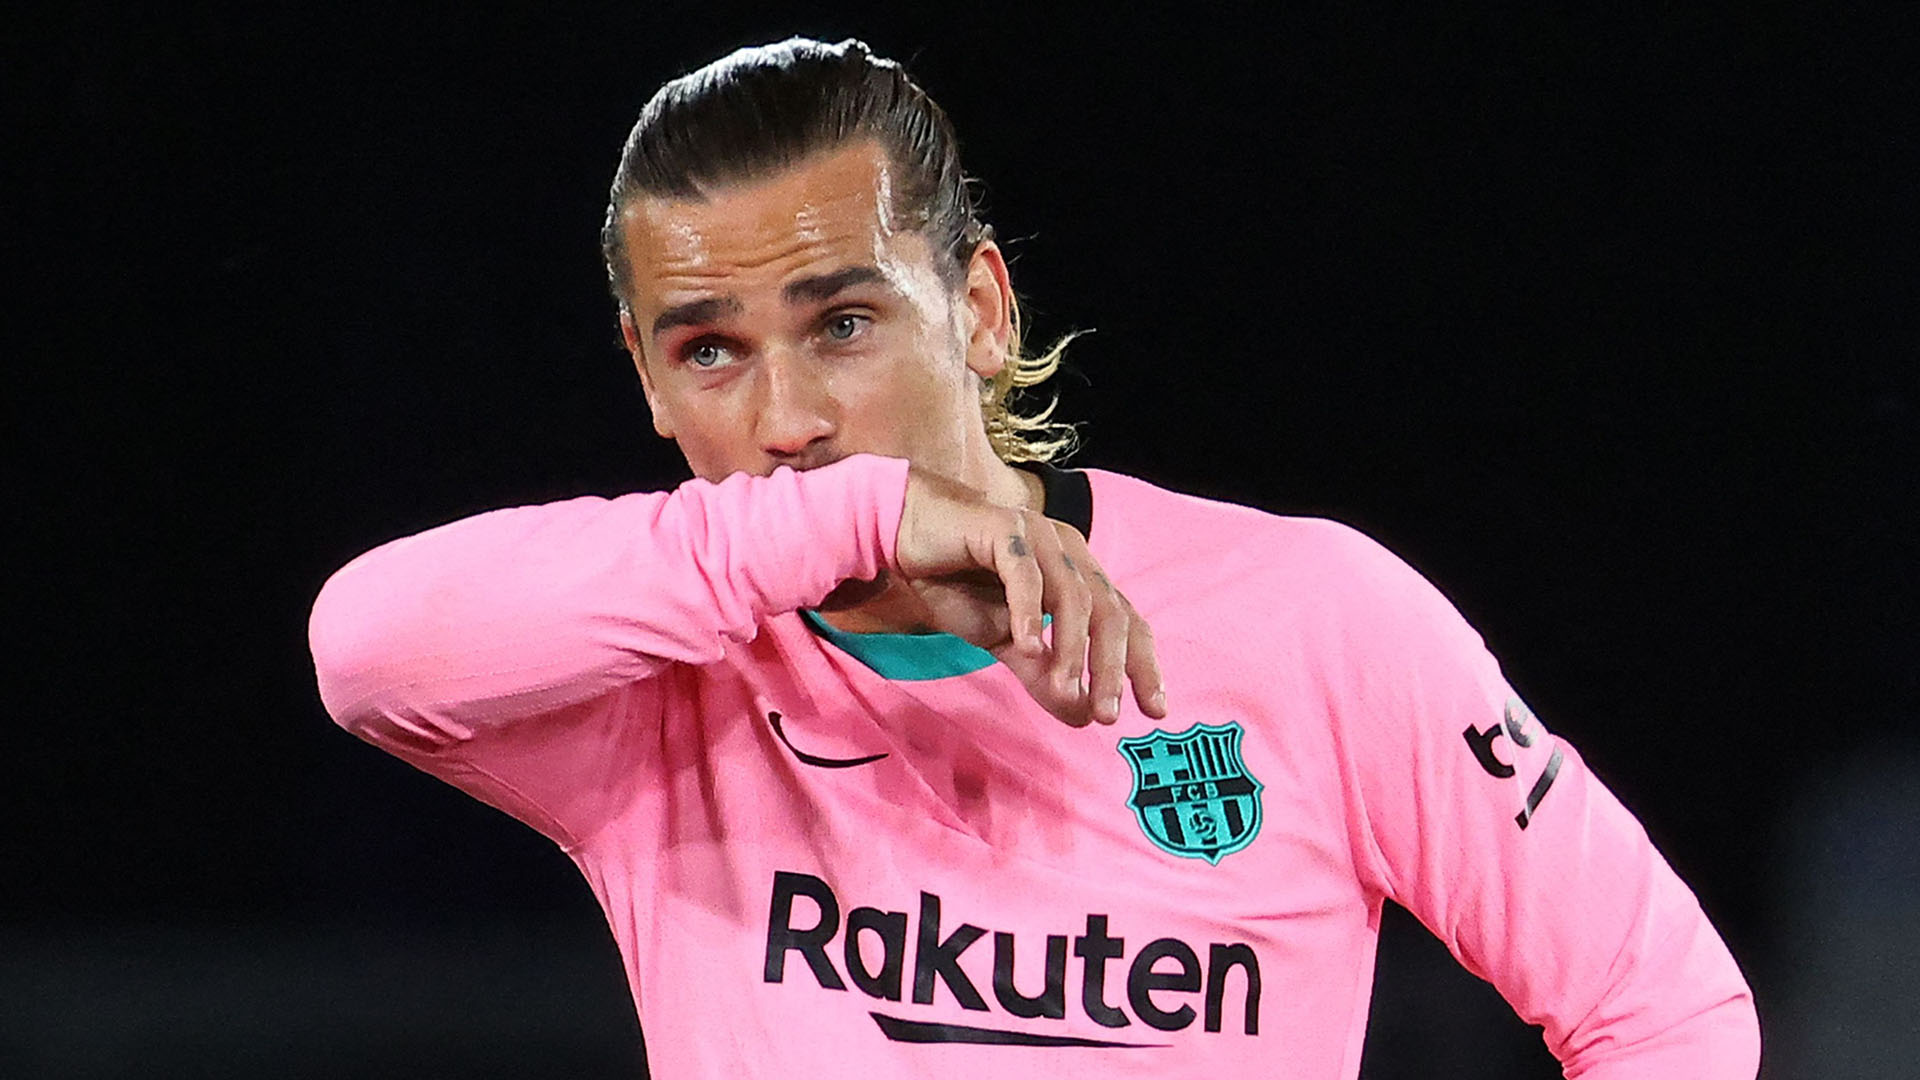 Griezmann called CEO of Barcelona sponsor Rakuten to apologise over alleged racism